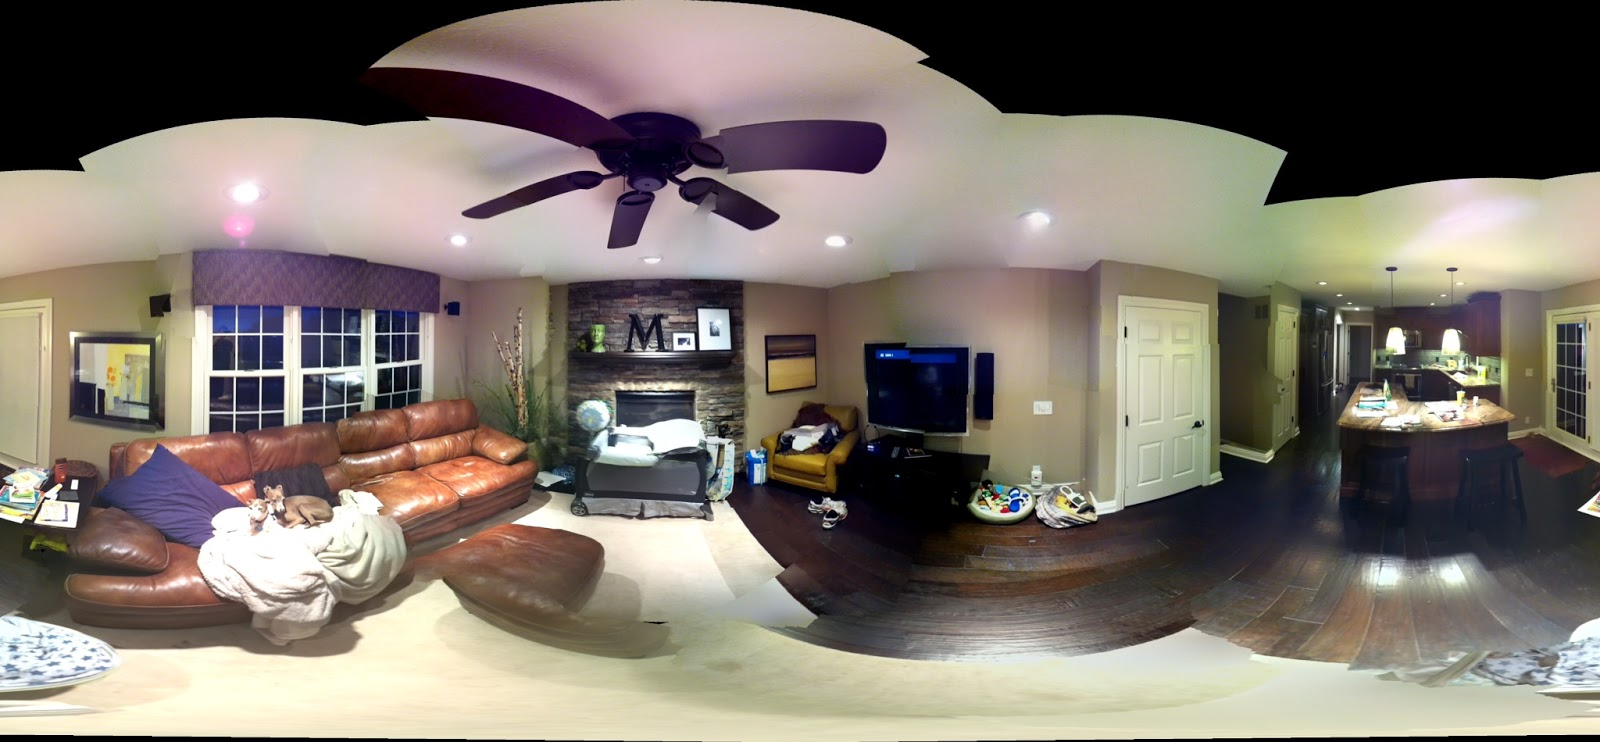 Photosynth-Panoramic-Picture-Stiched-iPhone-App-Living-Room-Kitchen-Remodel-2010